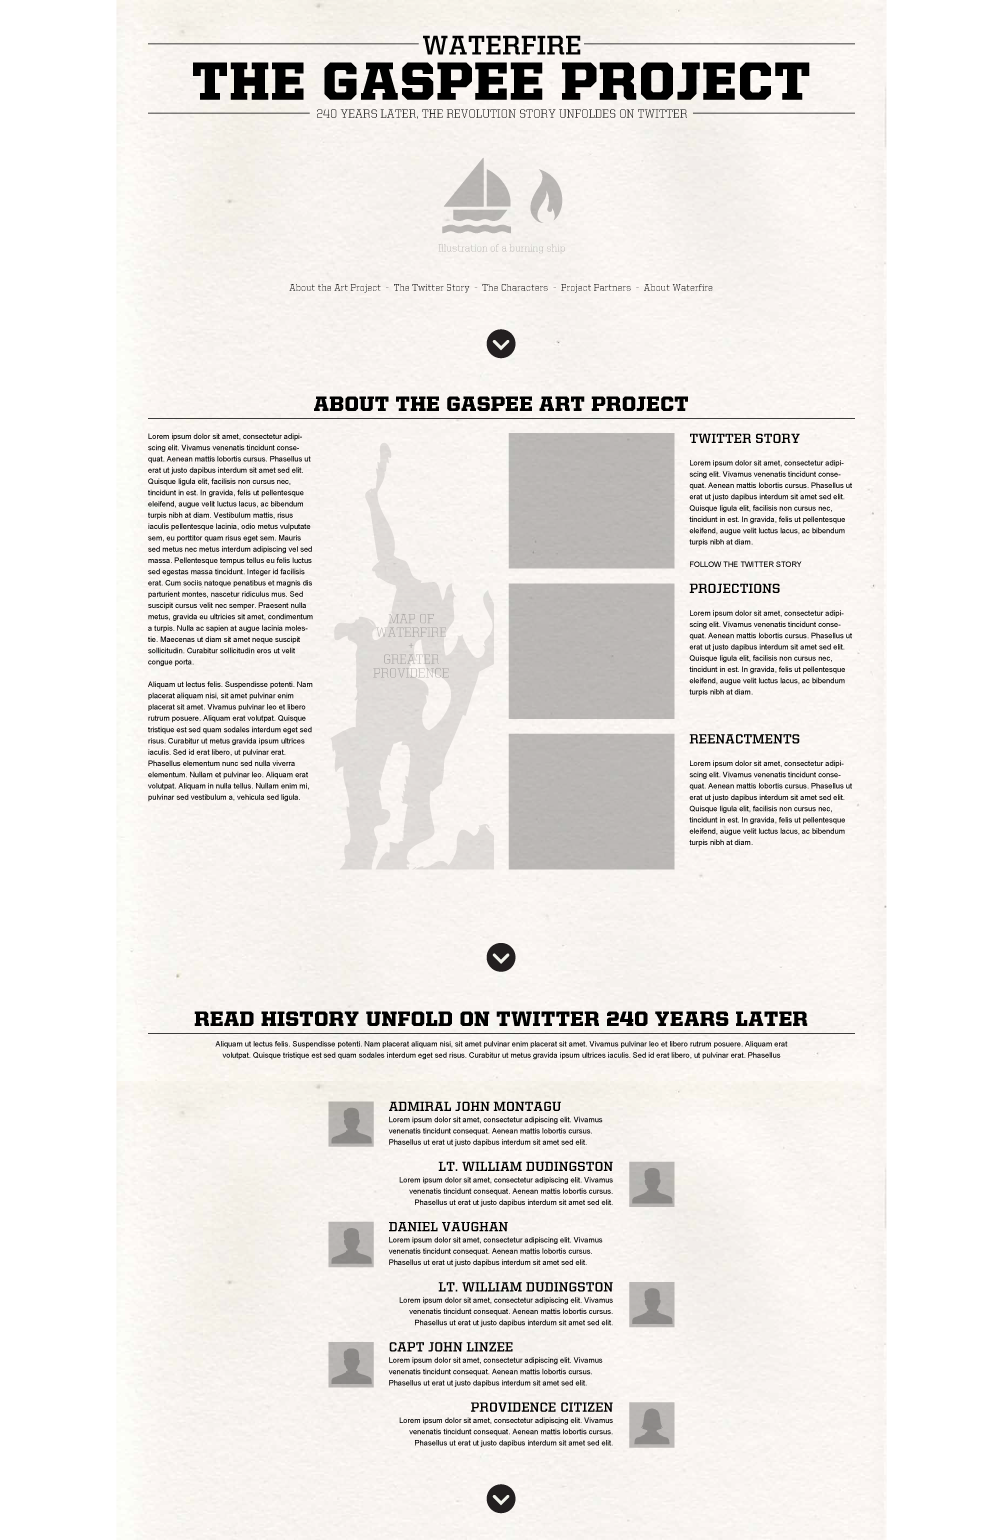 Wireframes for the event microsite